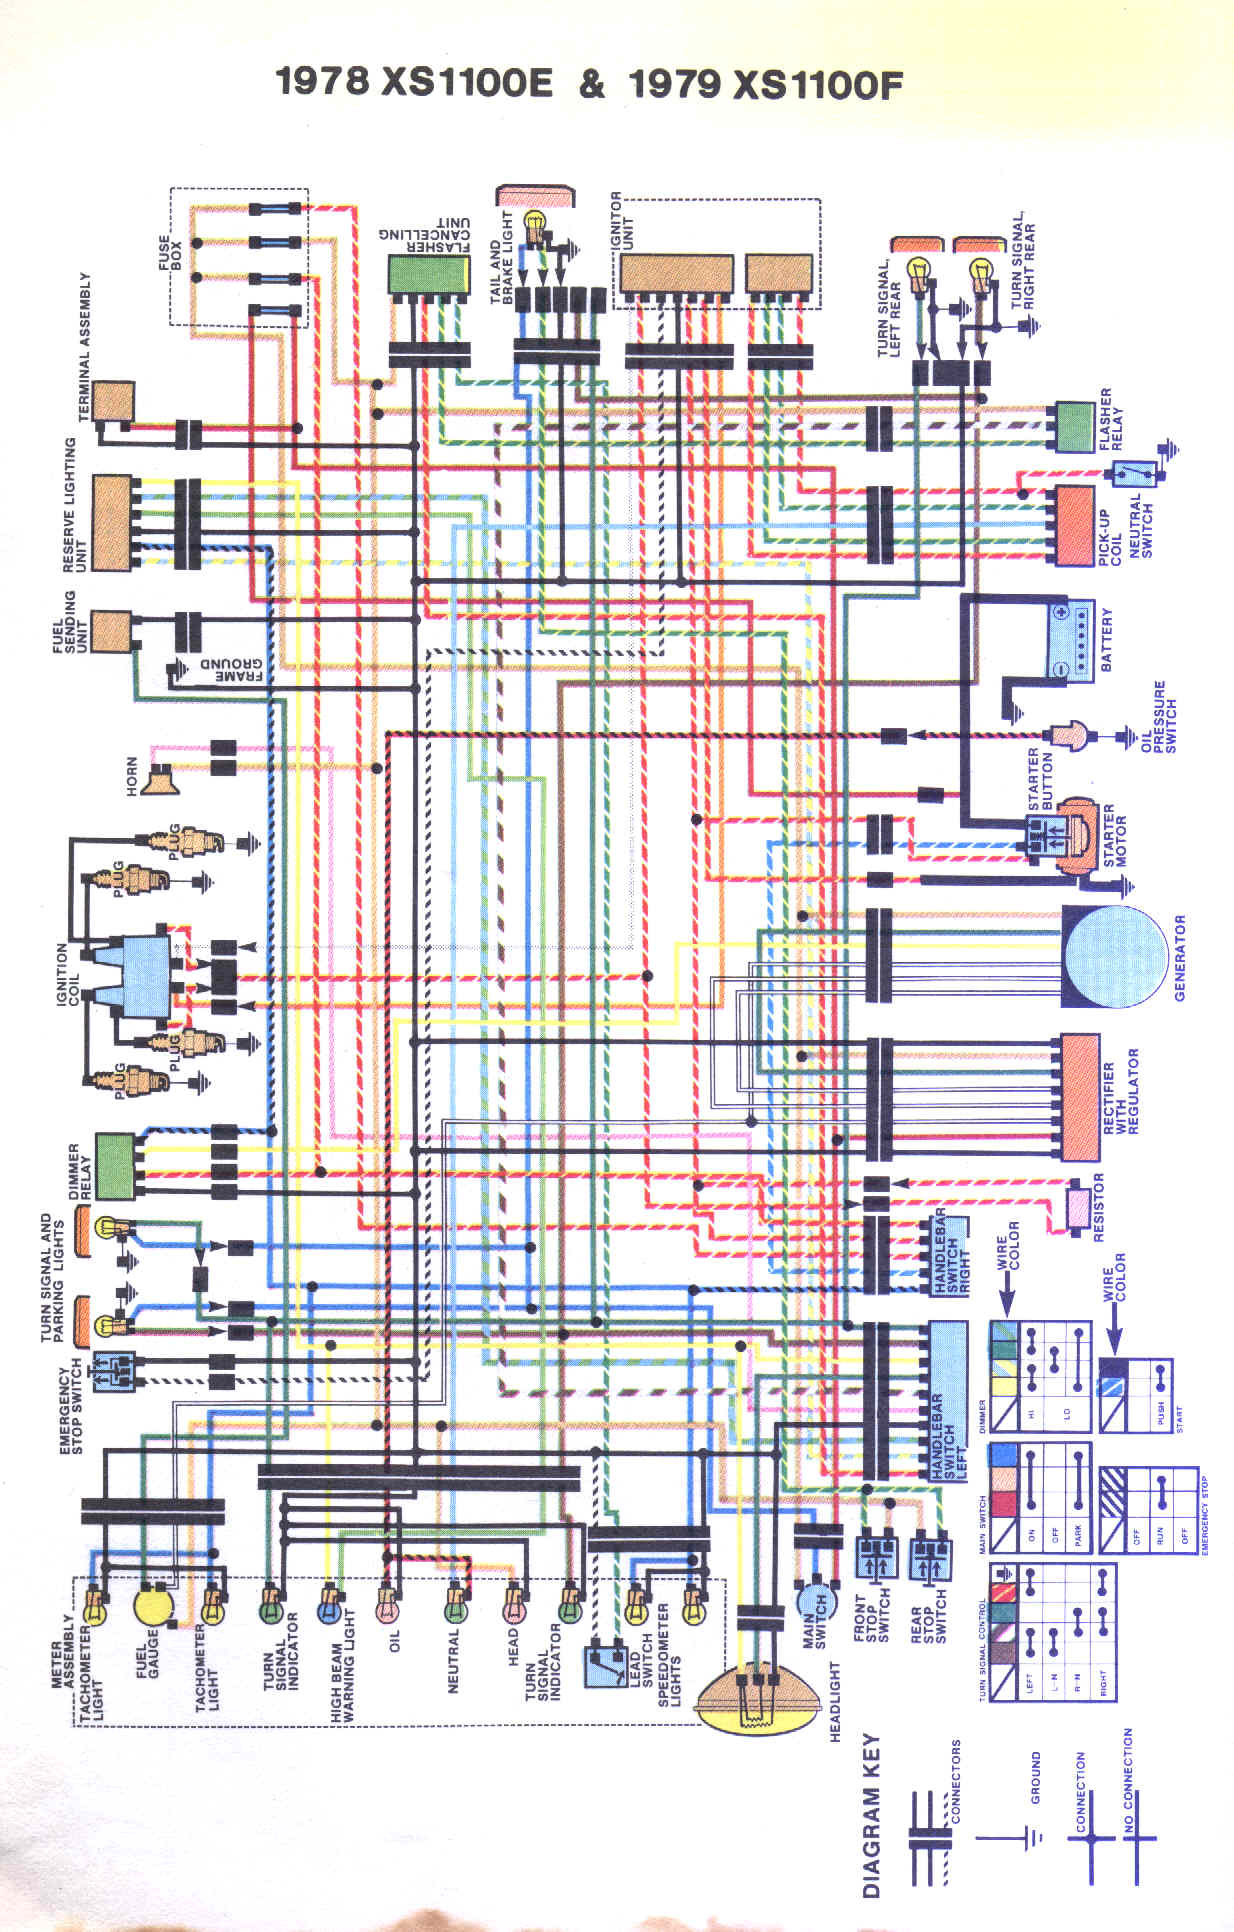 XS11E_F gl1000 wiring diagram na50 wiring diagram \u2022 wiring diagrams j kawasaki er 5 wiring diagram at edmiracle.co